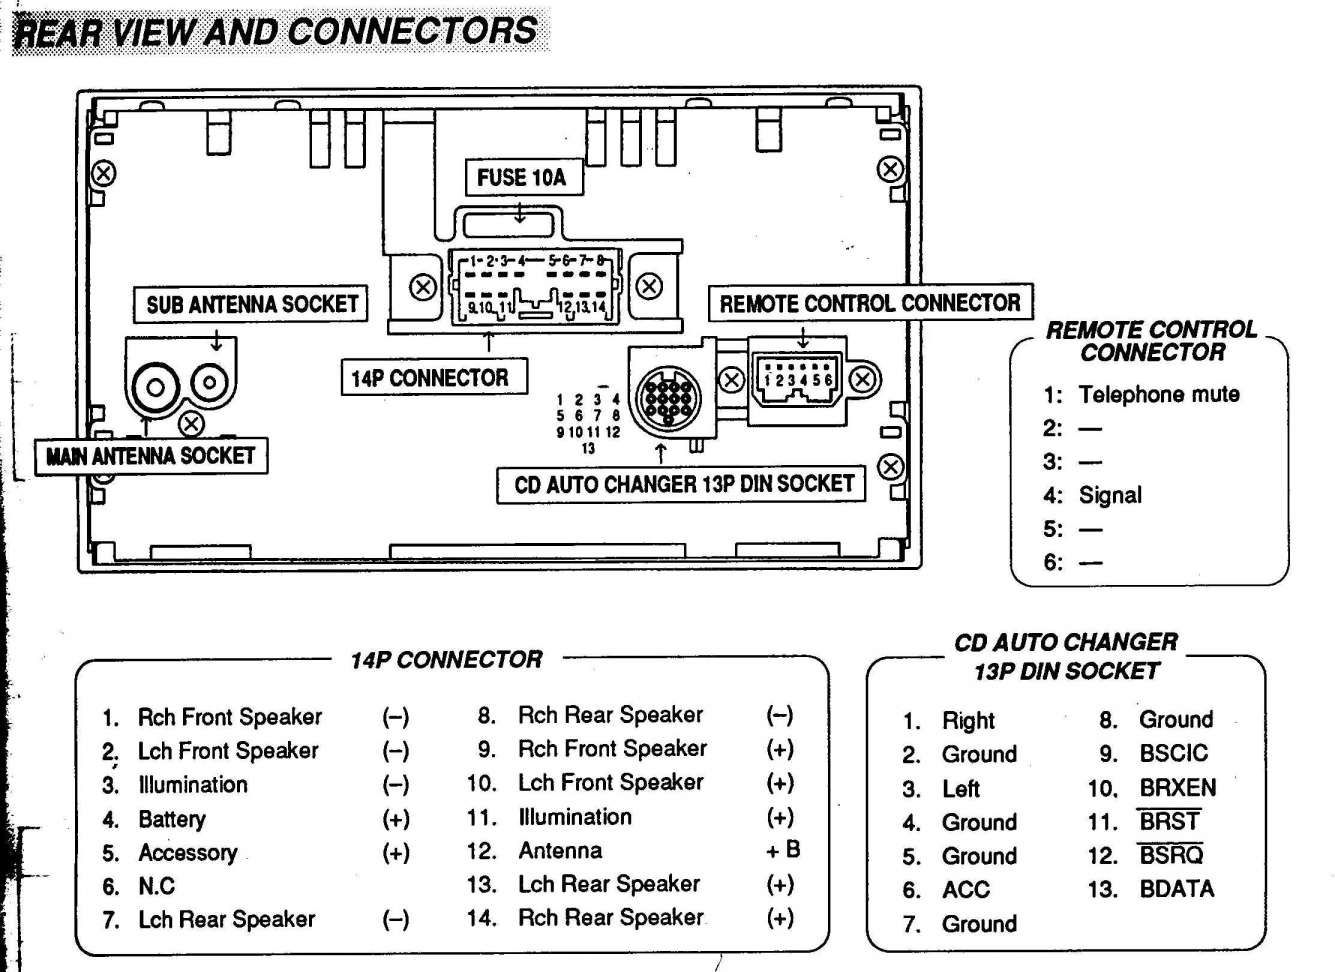 16+ Mitsubishi Car Radio Wiring Diagram | Mitsubishi cars, Electrical wiring  diagram, Car stereoPinterest